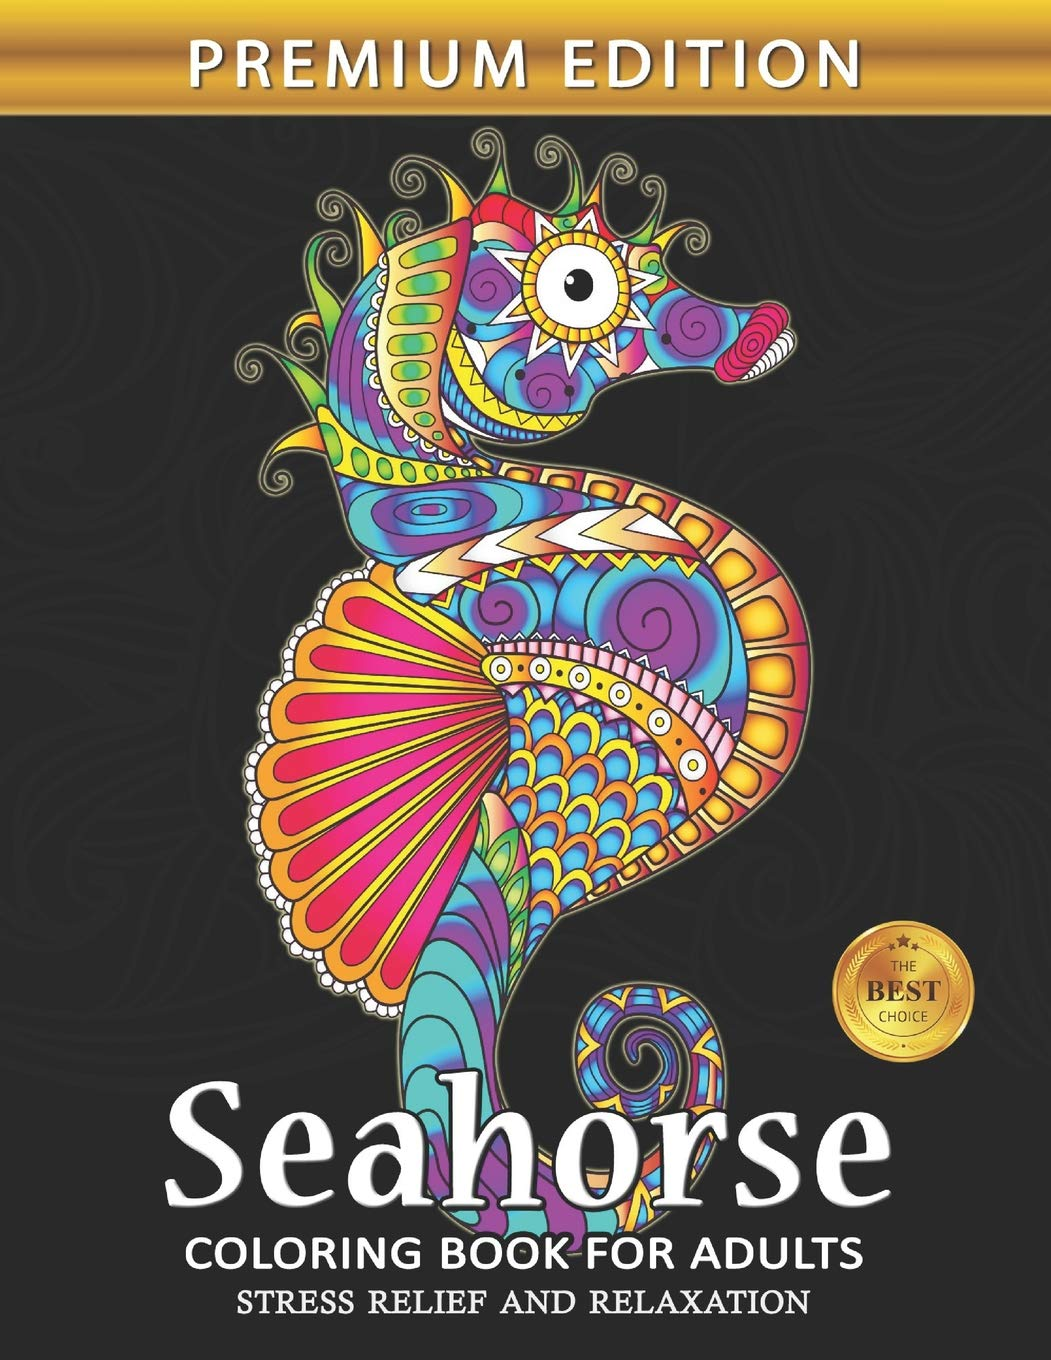 Seahorse Coloring Book For Adults Sea Creatures Ocean Adults Coloring Book Stress Relieving Unique Design Rocket Publishing 9781075539985 Amazon Com Books